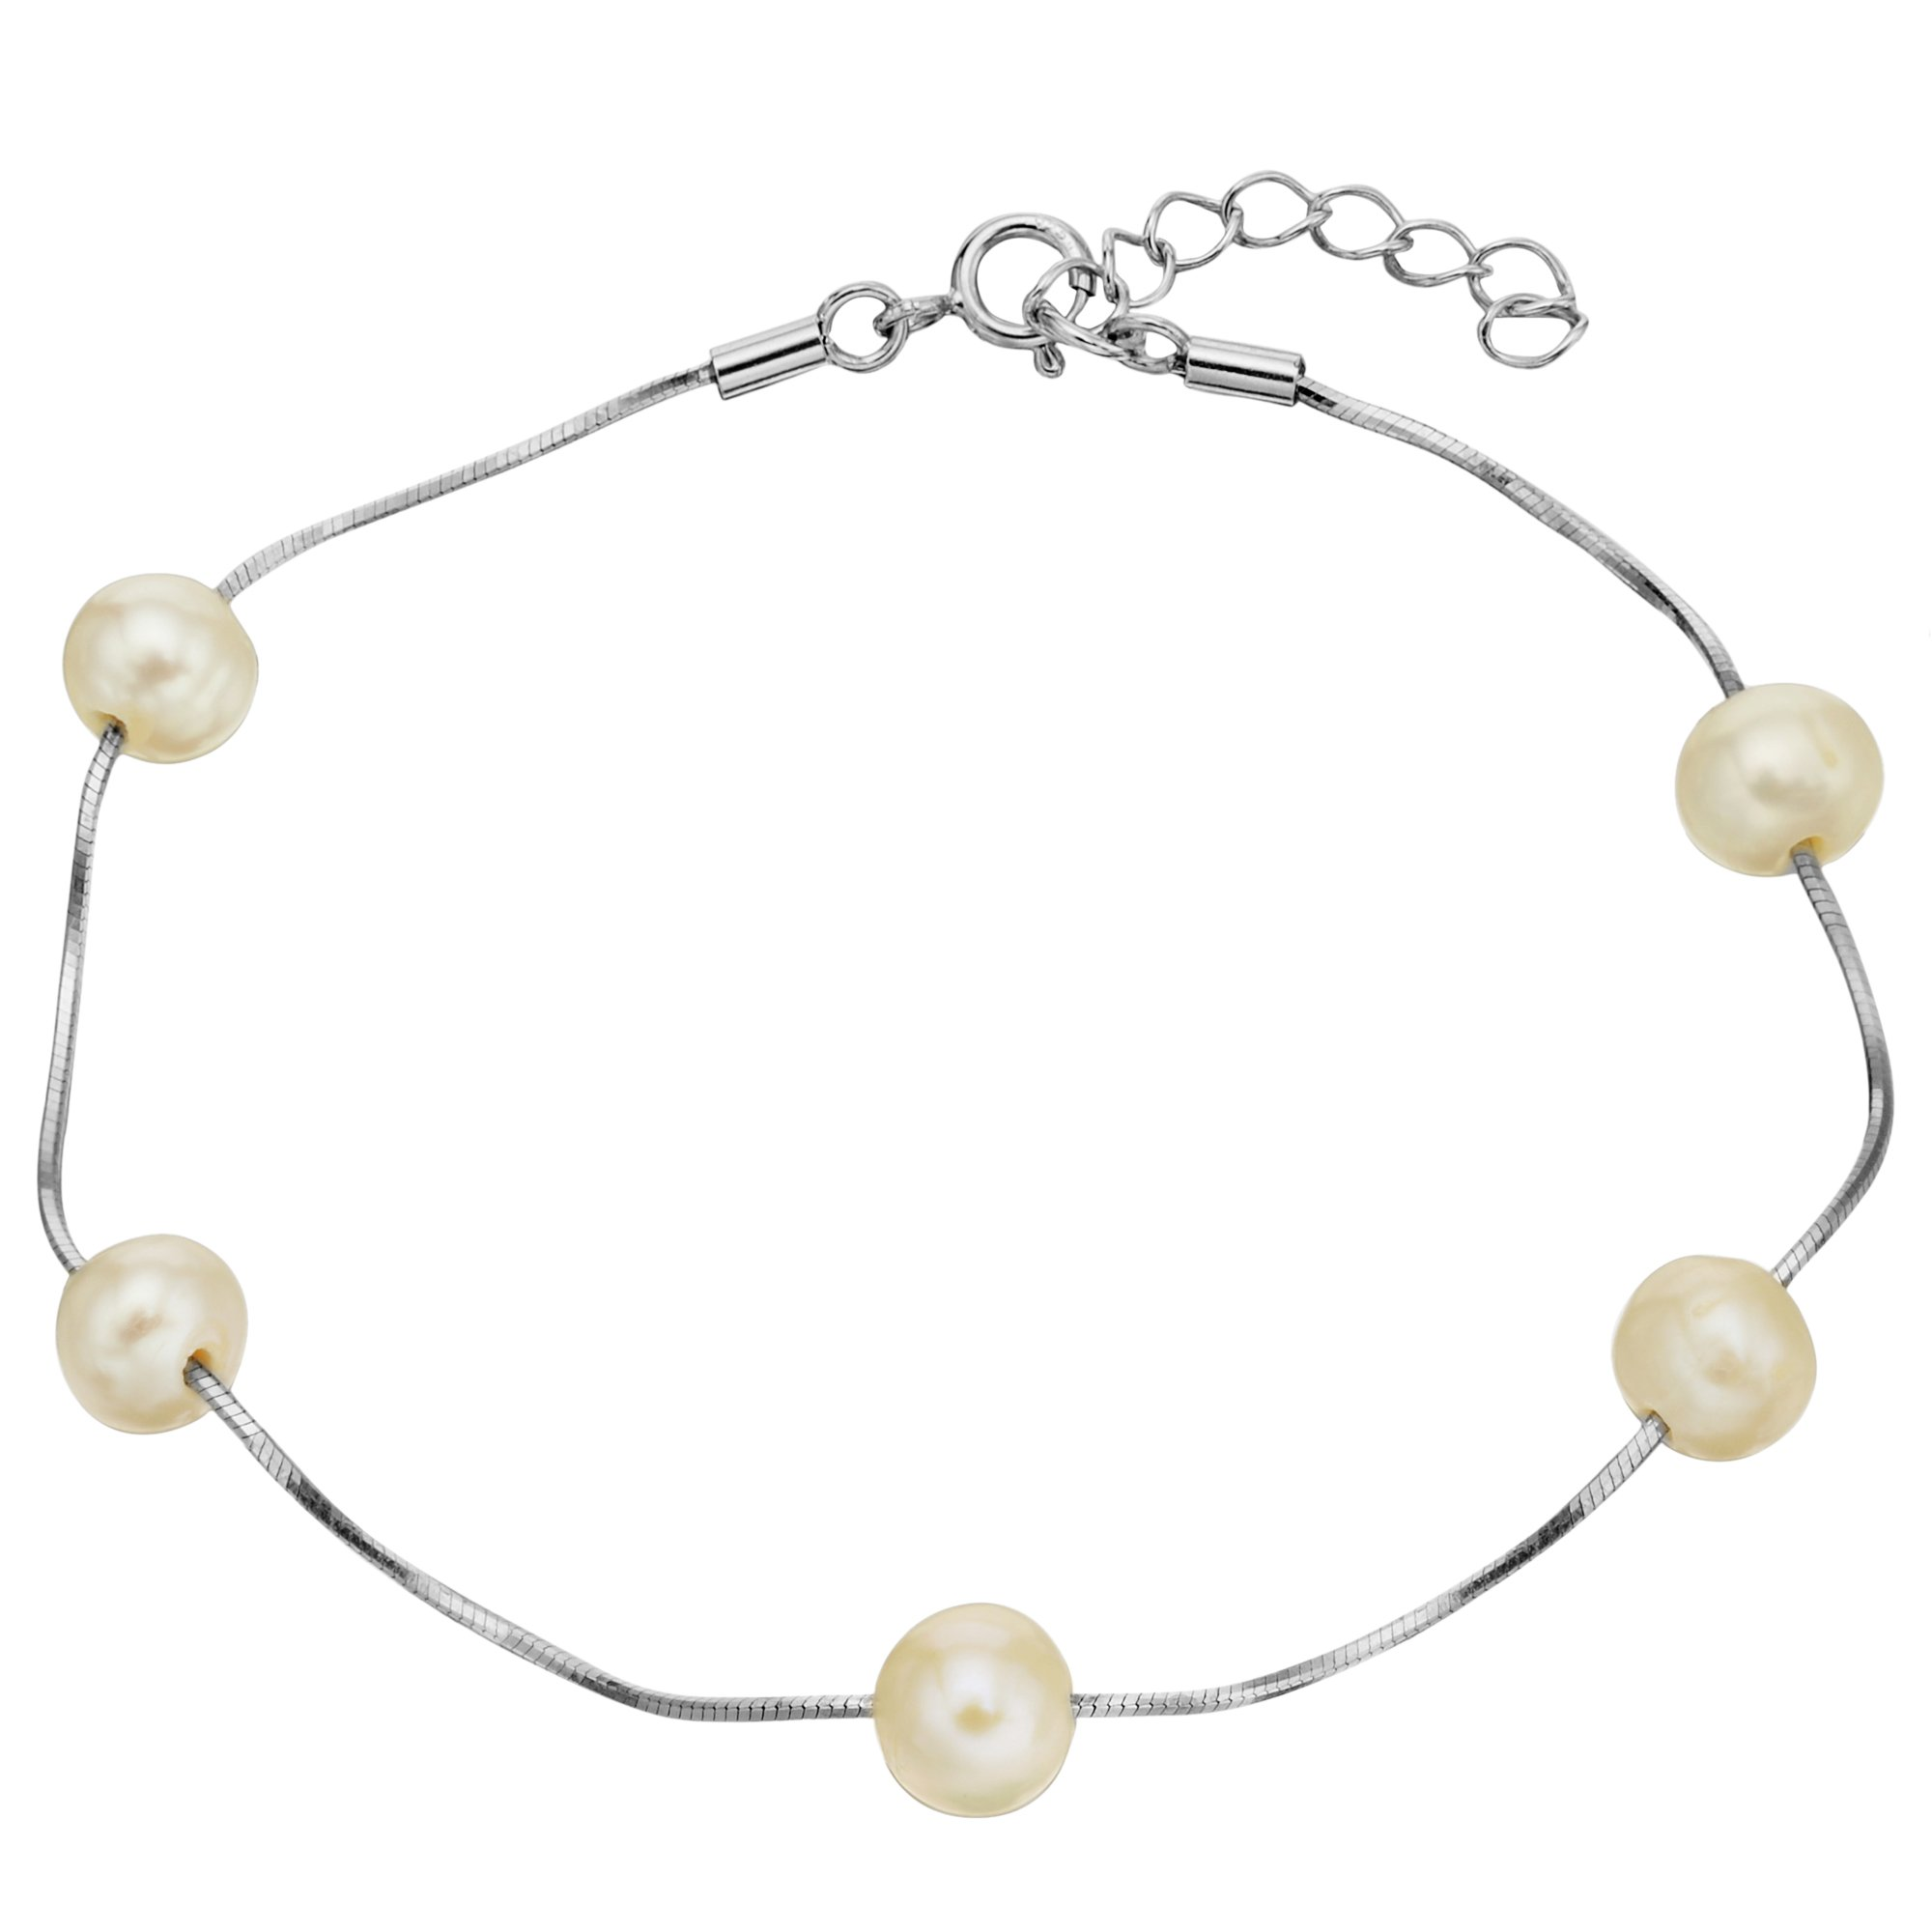 EVER FAITH 925 Sterling Silver Tin Cup 6MM Freshwater Cultured Pearl Station Bracelet - One Layer